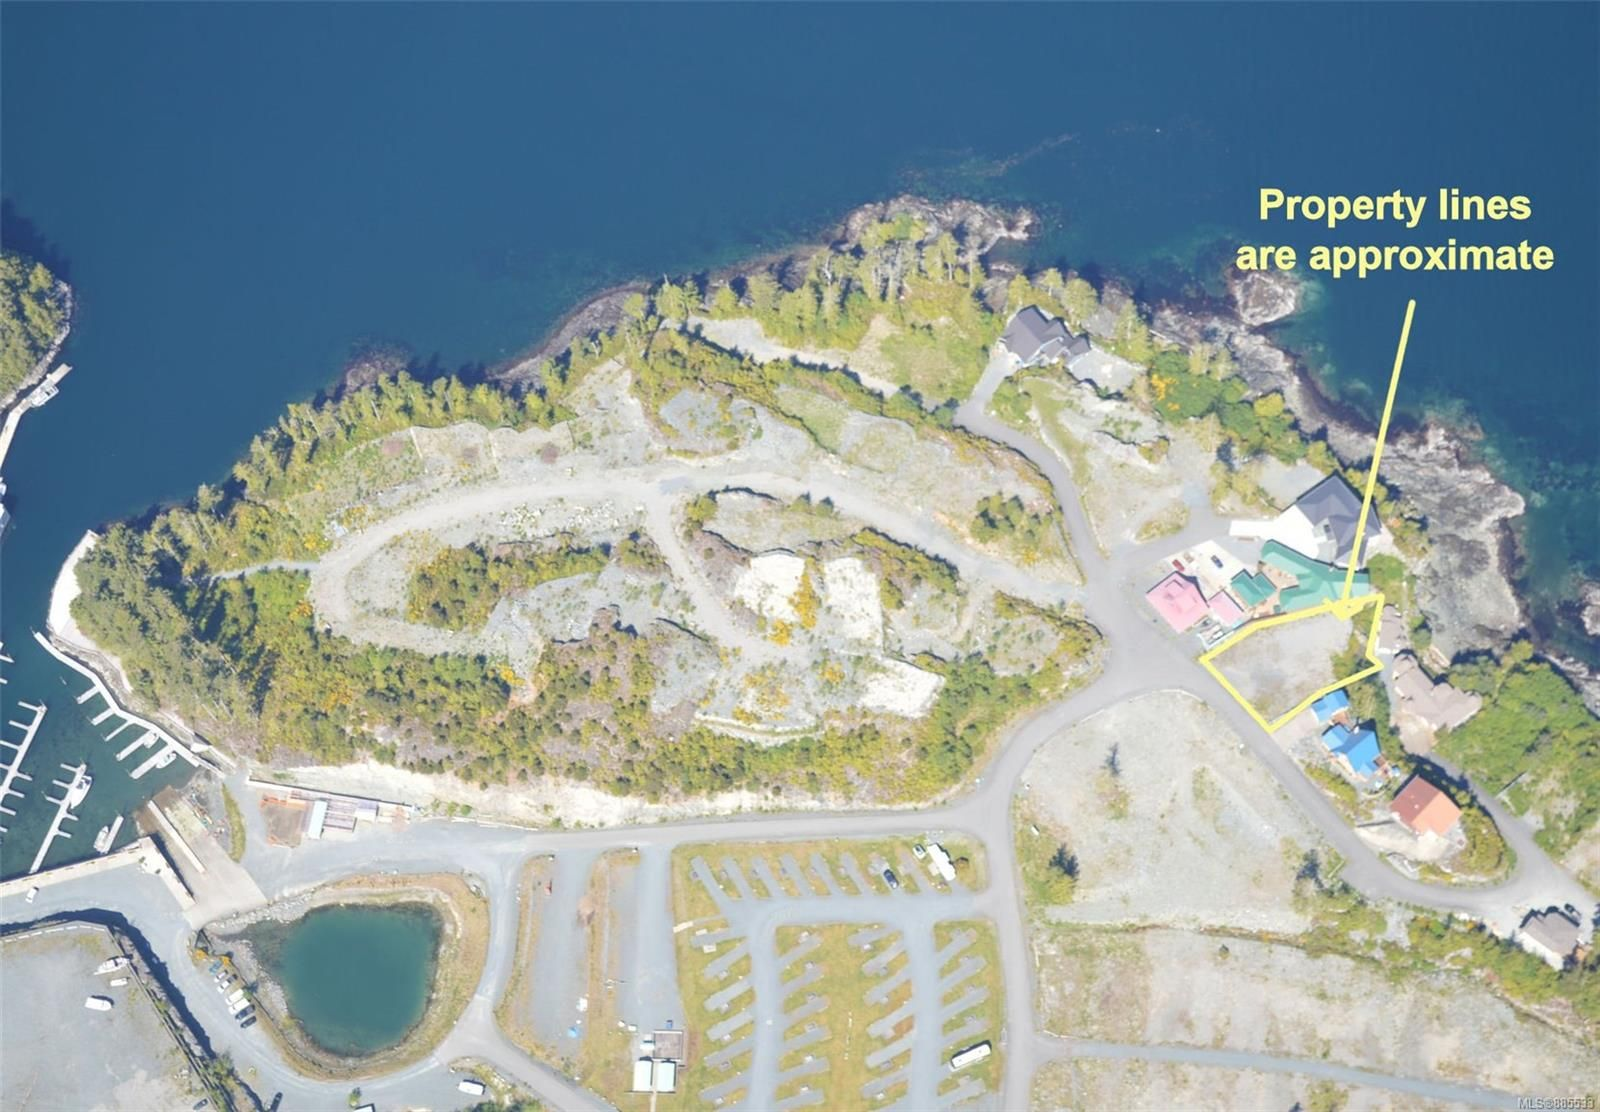 Main Photo: 1550 Ella Point Dr in : NI Hyde Creek/Nimpkish Heights Land for sale (North Island)  : MLS®# 885533